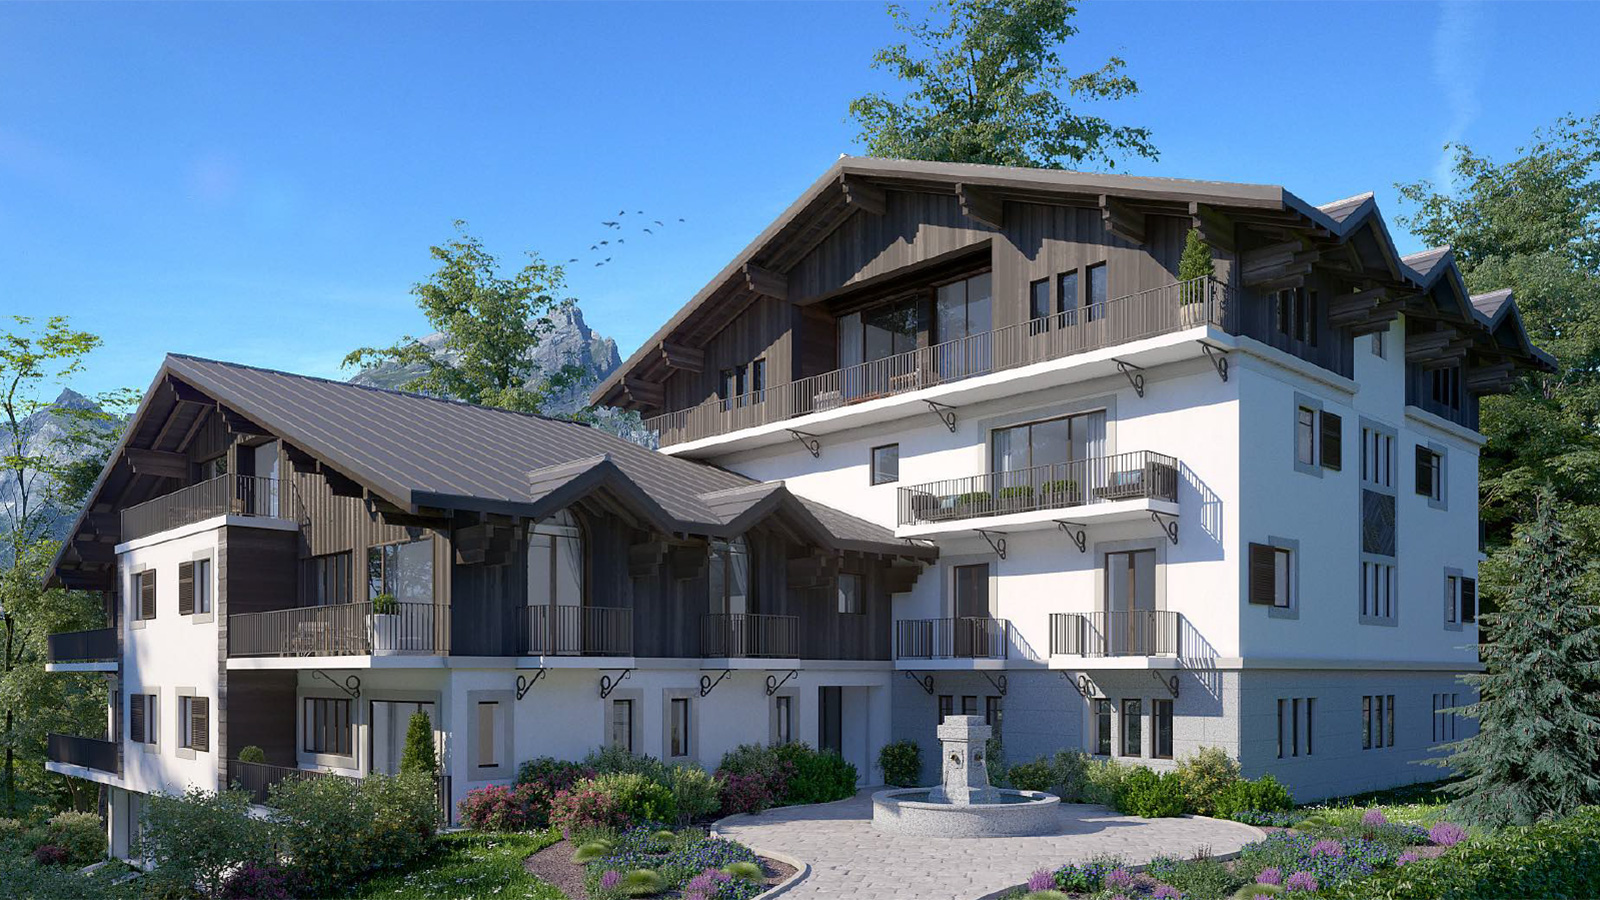 Kneiss Apartments, France